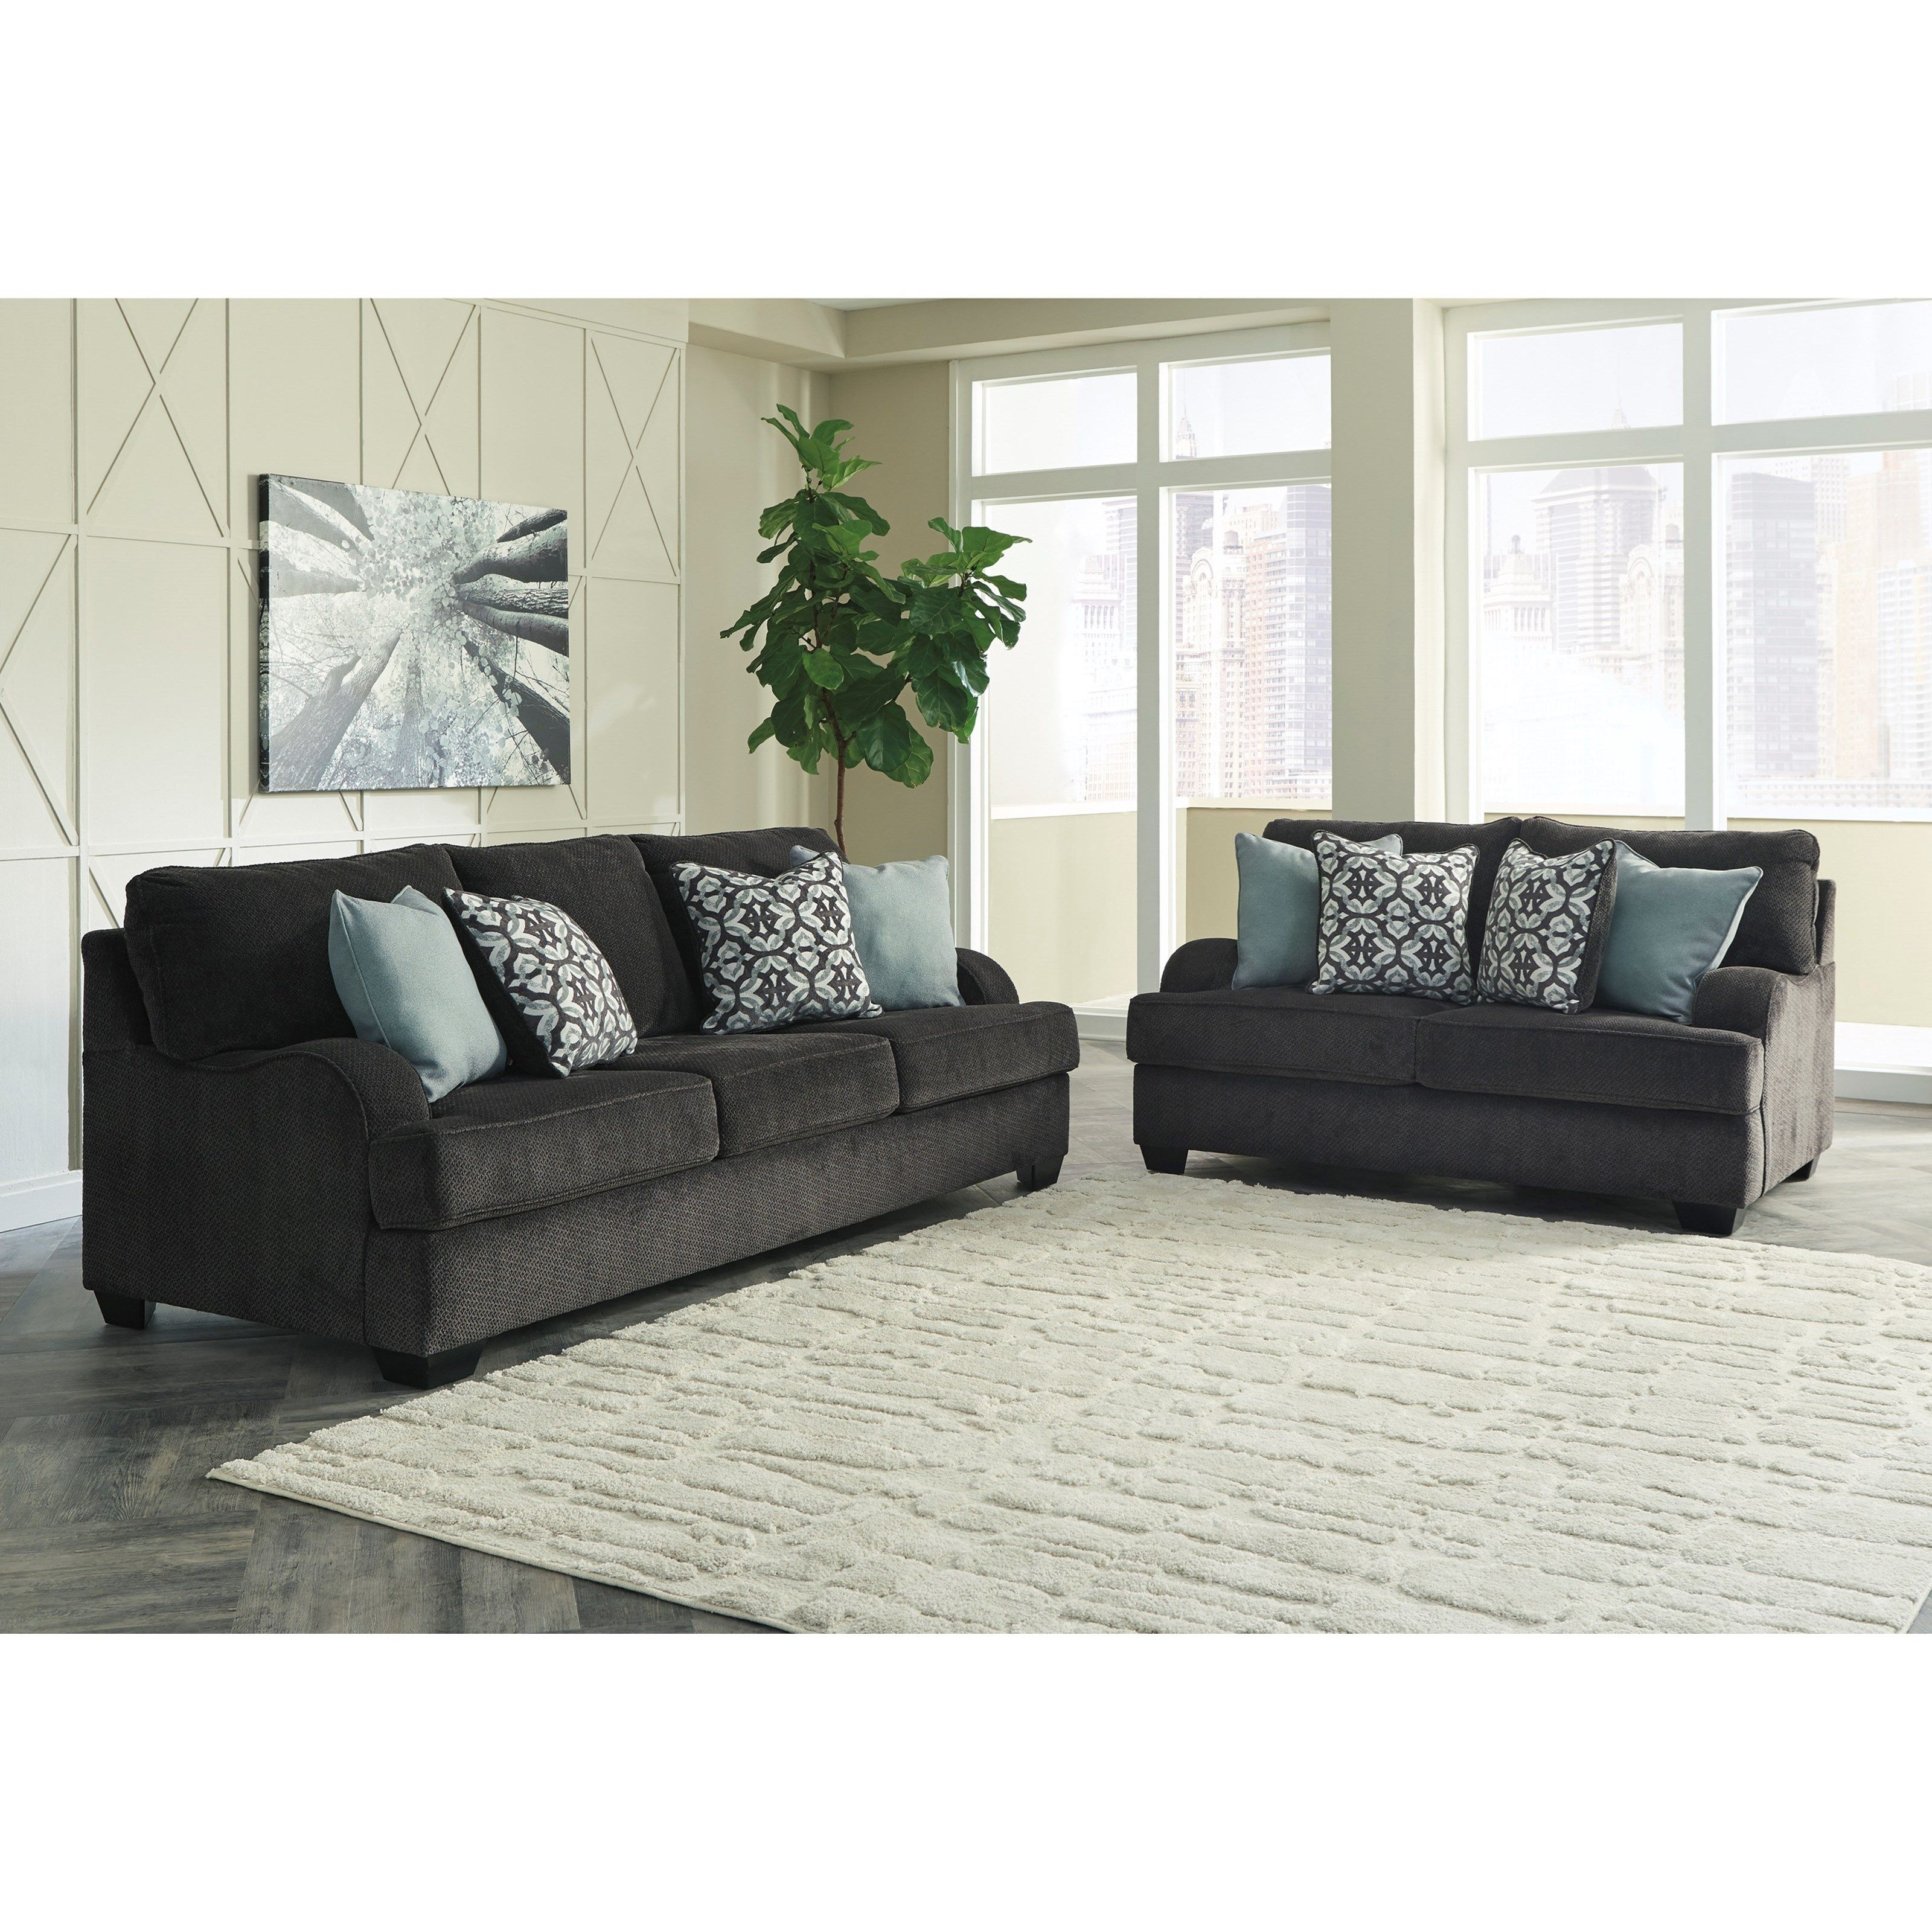 Charenton Stationary Living Room Group By Benchcraft In